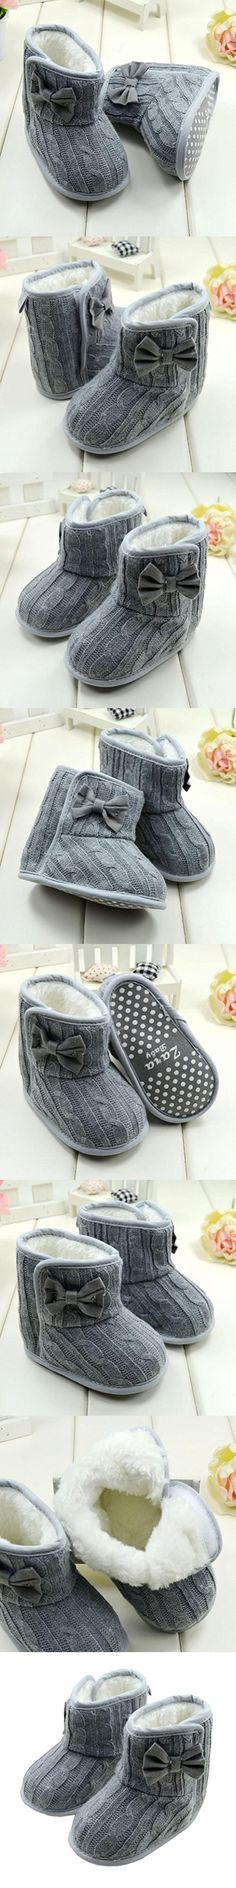 DZT1968® Baby Girl Soft Anti Slip Sole Knit Cotton Bowknot Shoes Snow Boots Socks (6~12 Months, Gray)